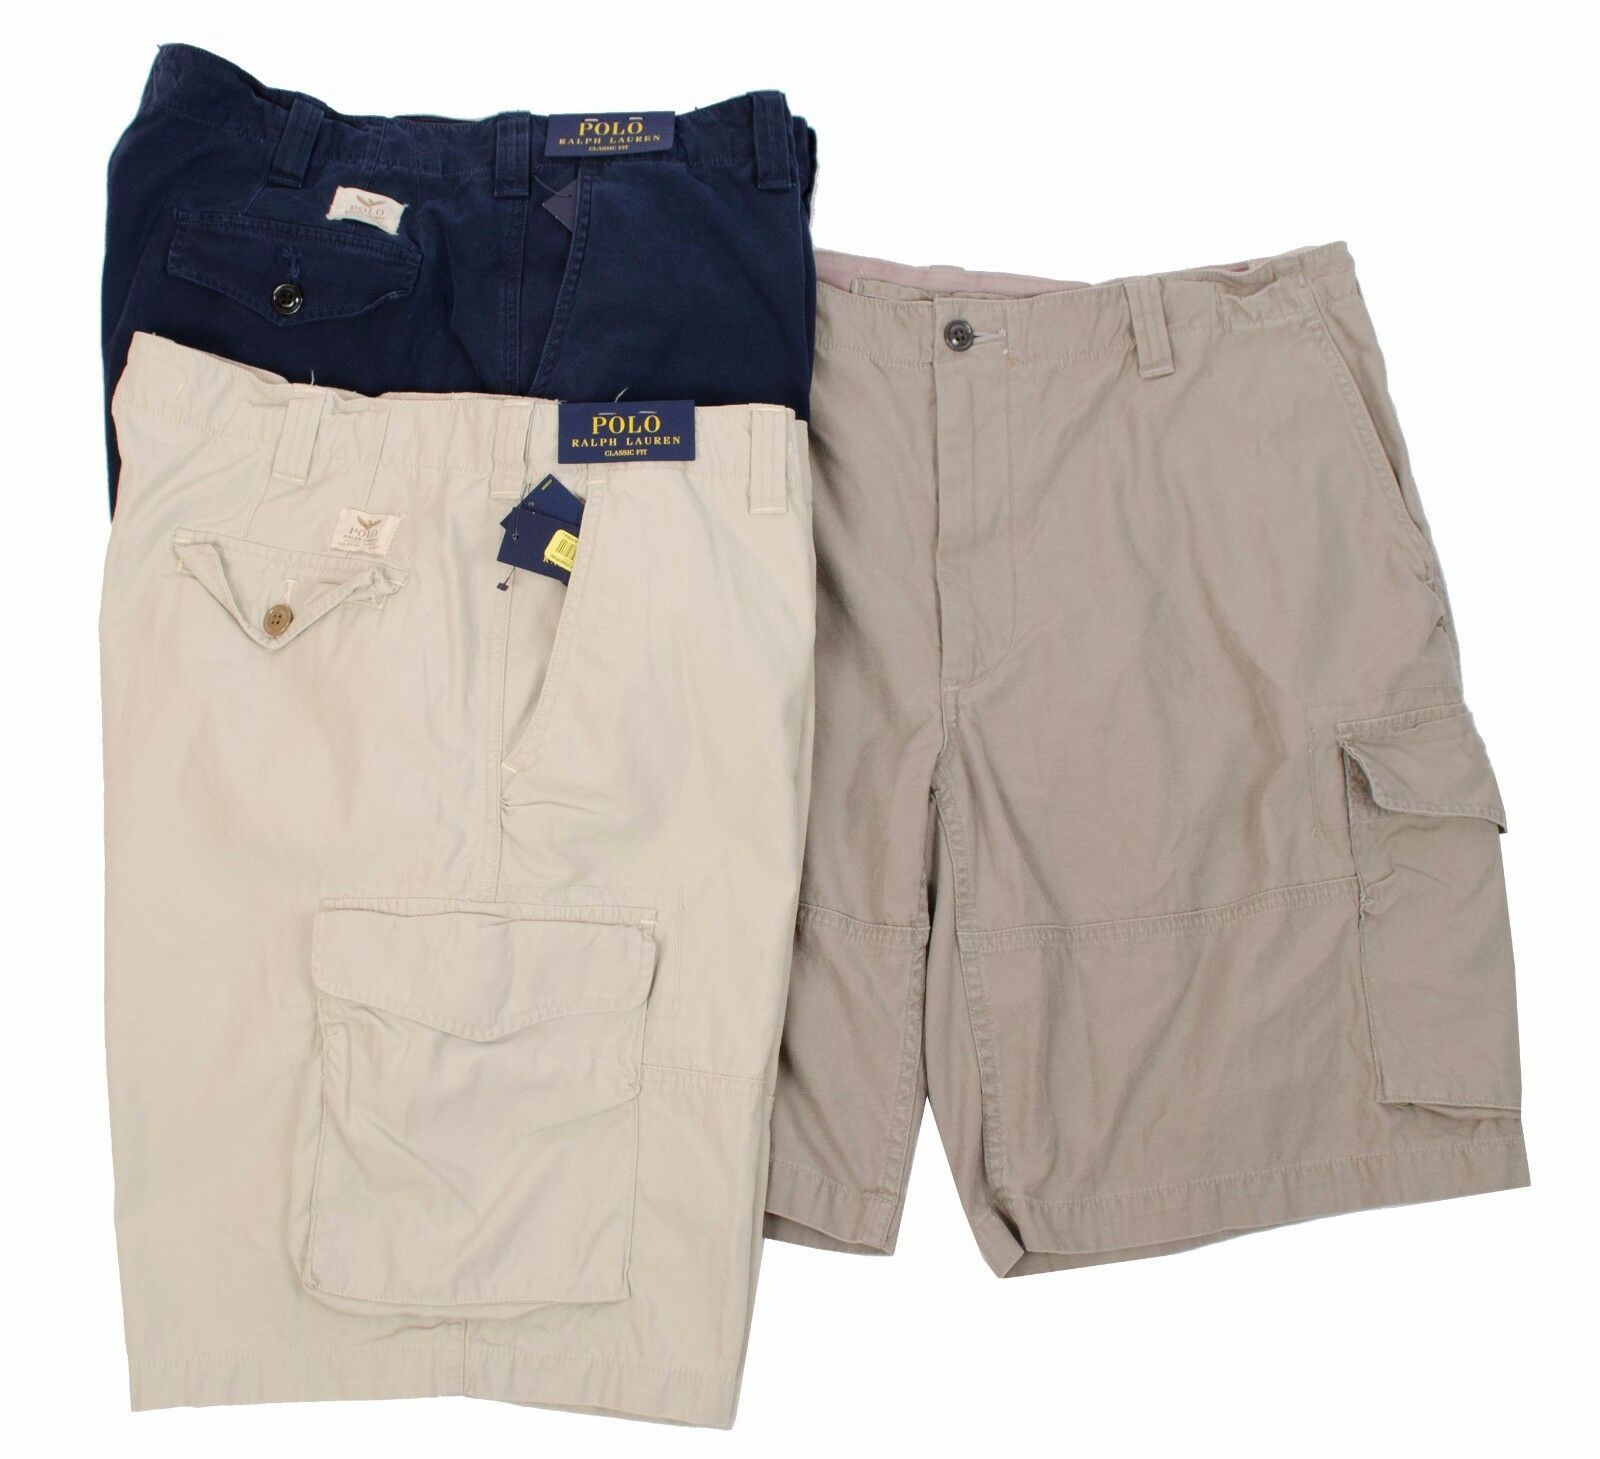 6c1adb478 POLO RALPH LAUREN MEN CLASSIC FIT CARGO CANVAS SHORTS NAVY PEWTER UTILITY  BEIGE olnlzl22875-Shorts